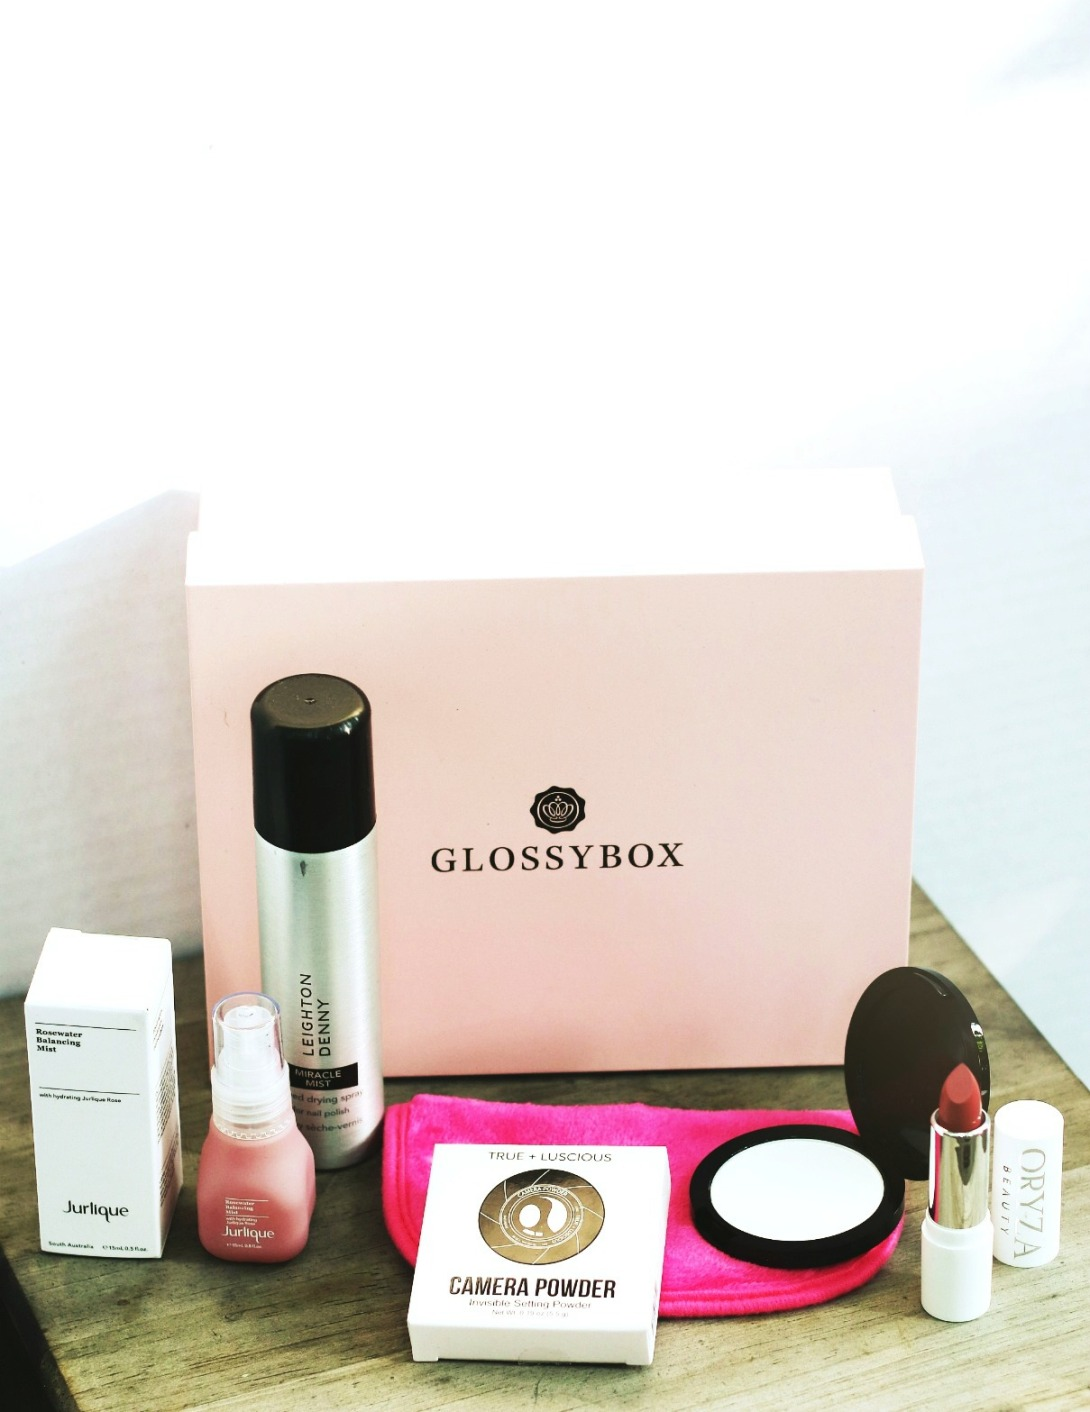 Glossybox July 2019 contents final